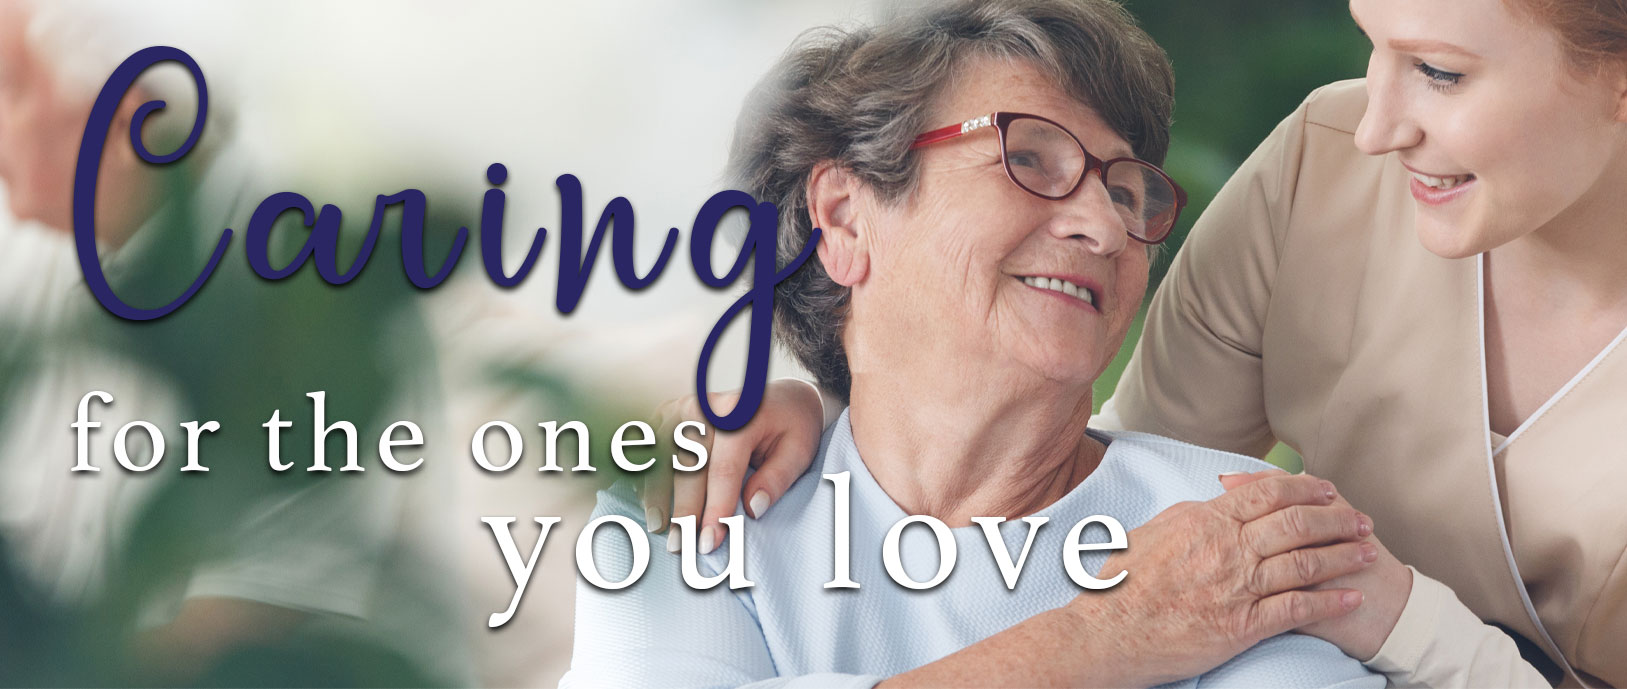 a picture of a grandmother with a nurse saying caring for the ones you love.